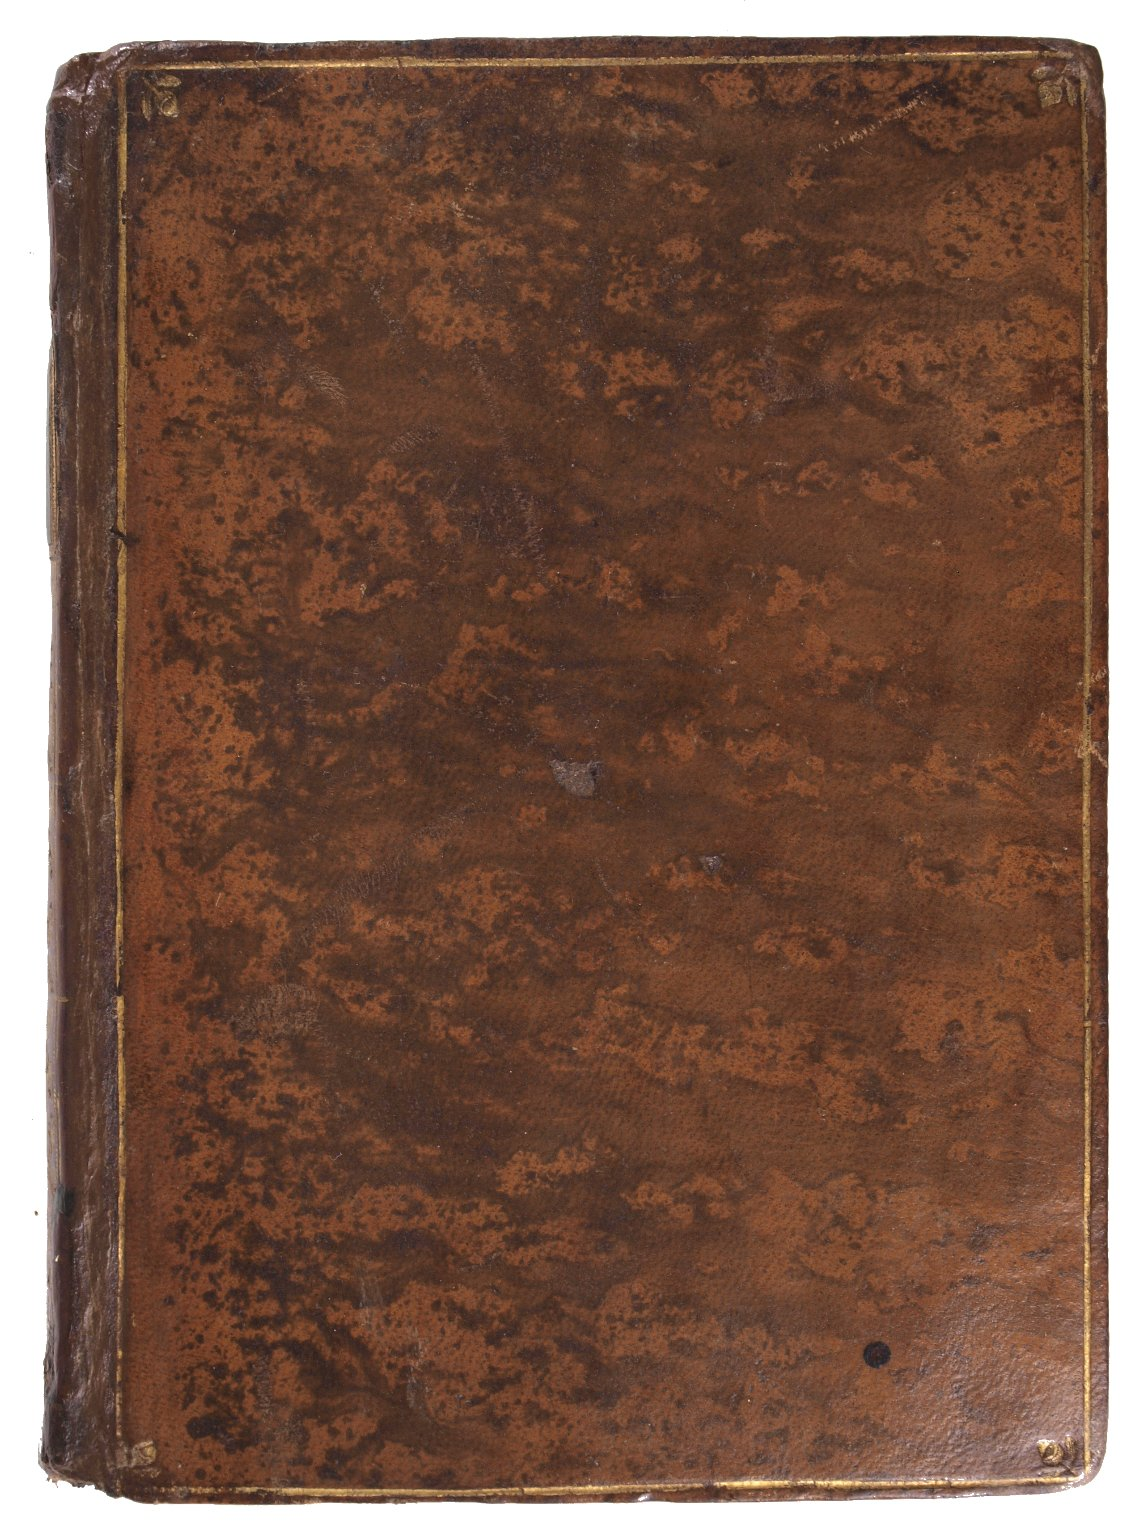 front cover, STC 299 c.1.